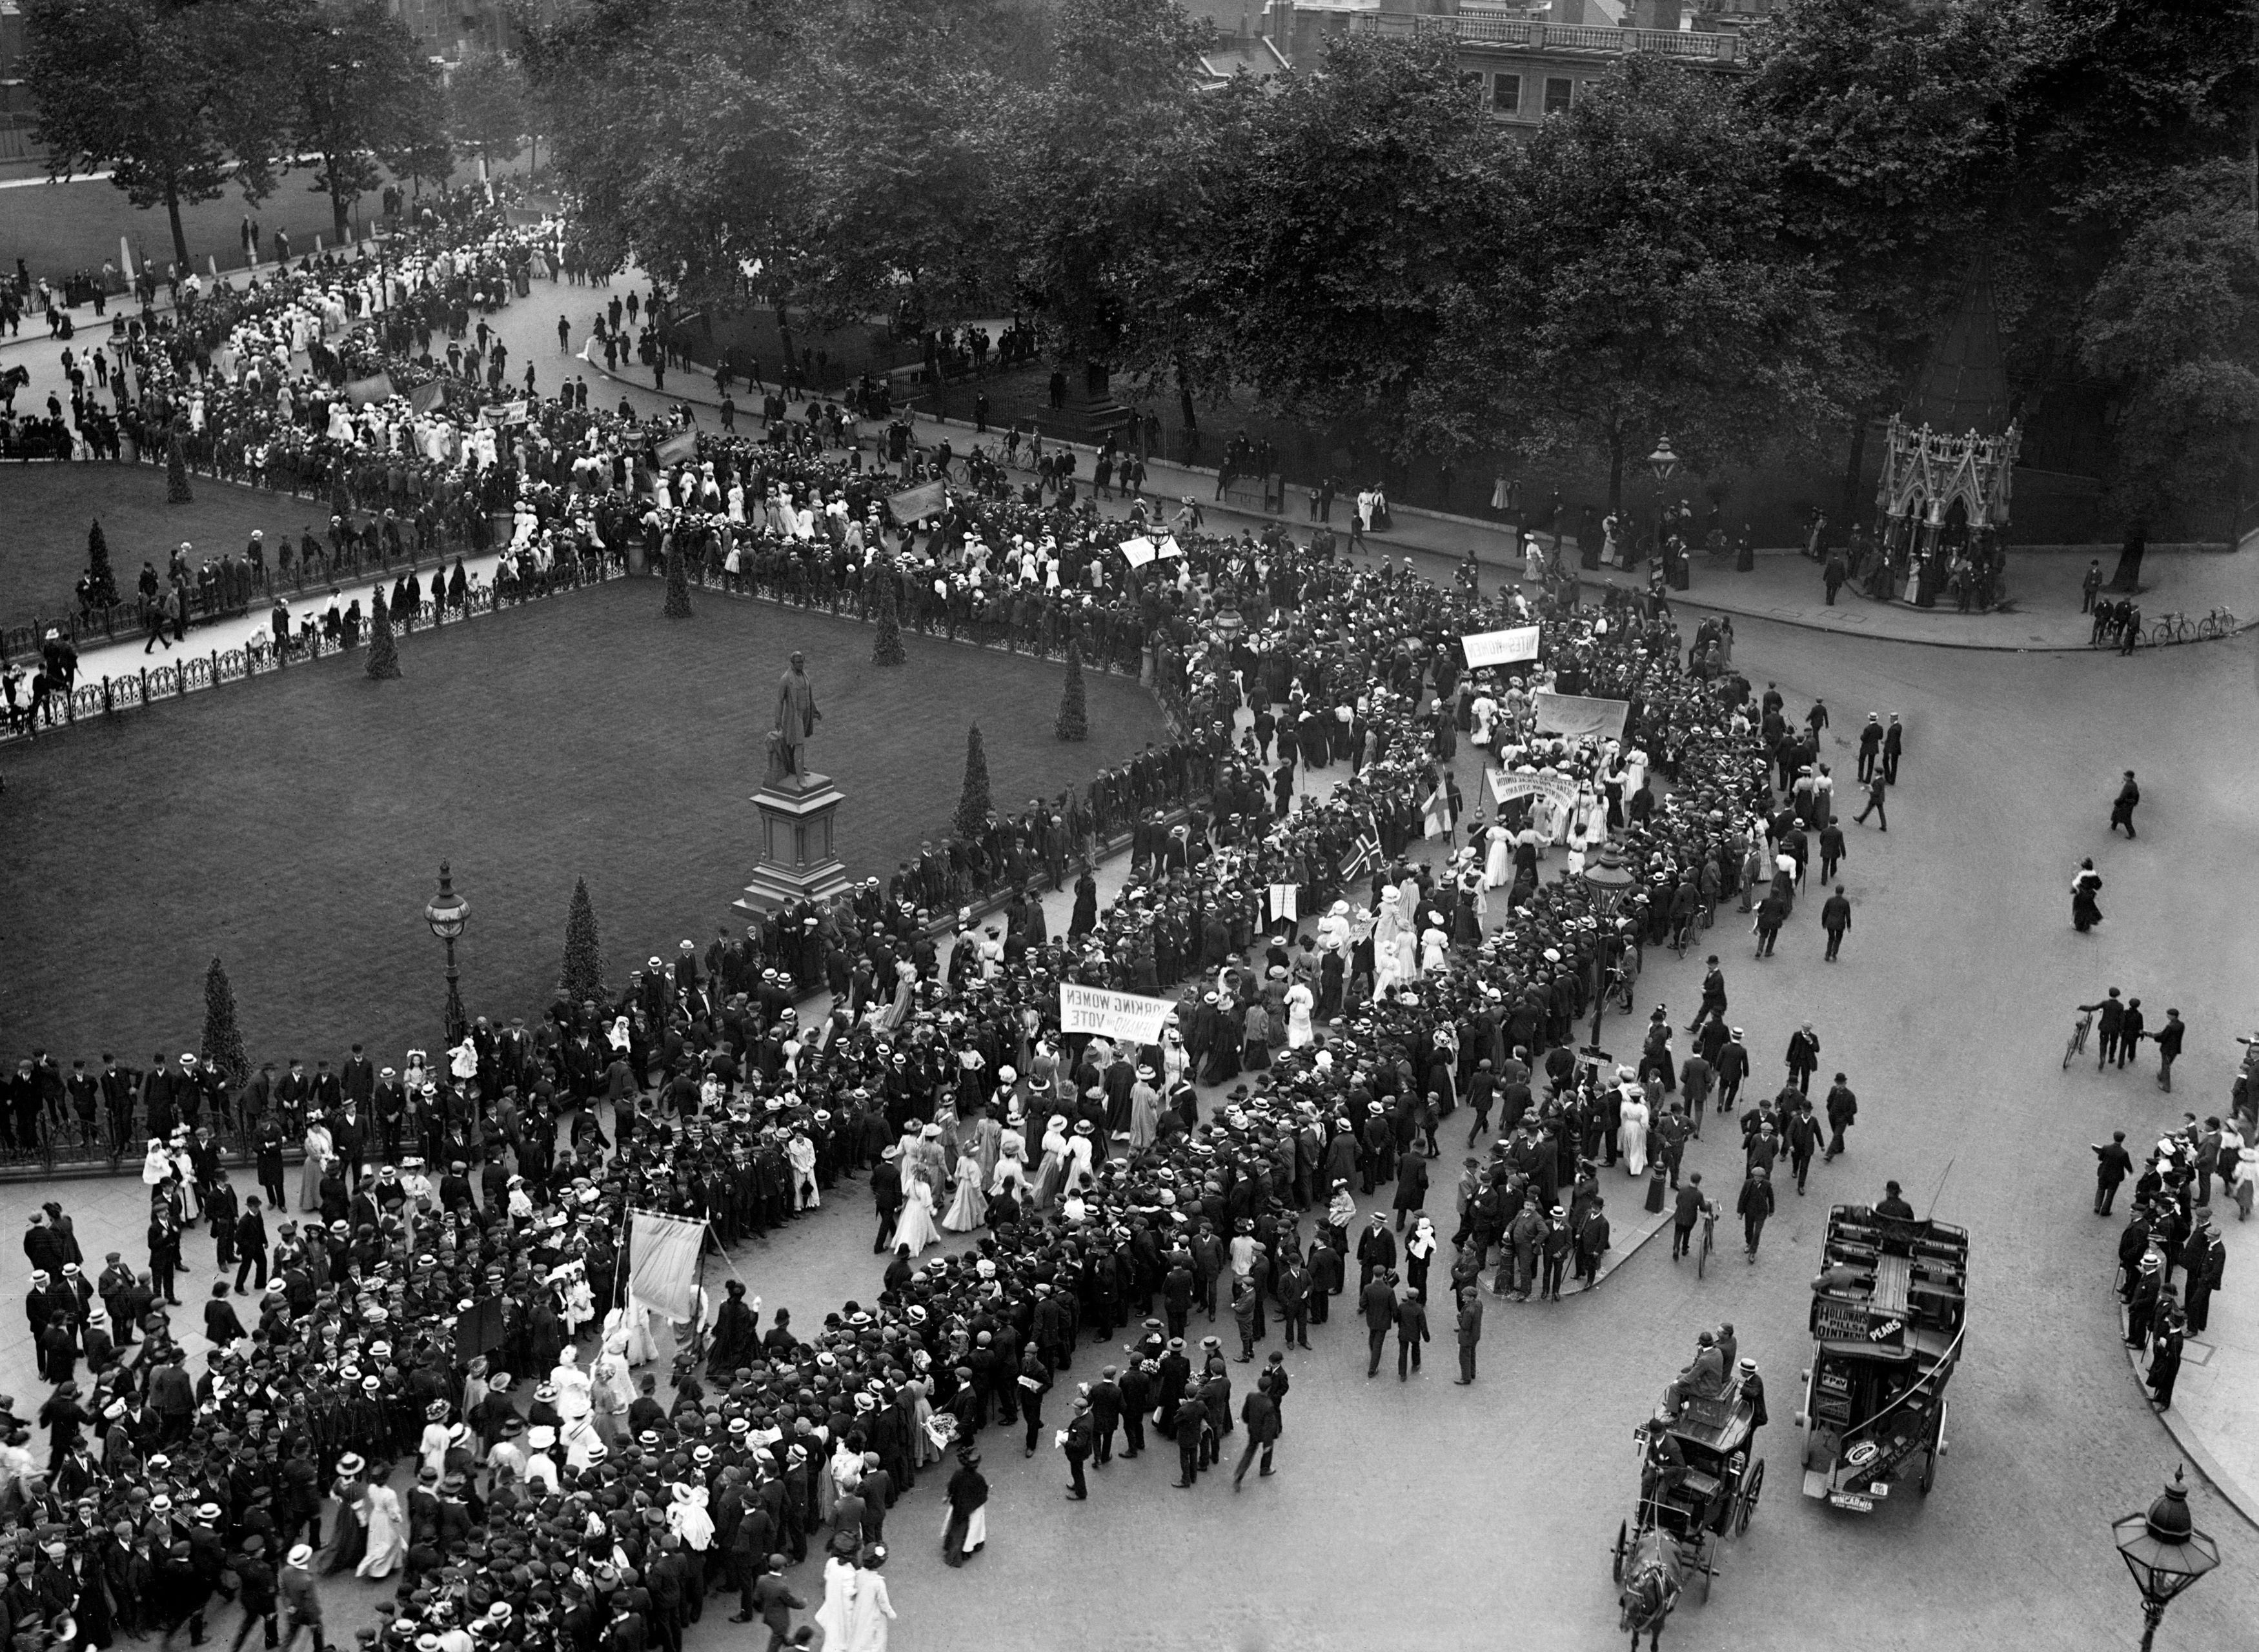 A suffragette procession passing through Parliament Square, London in 1908 (PA)